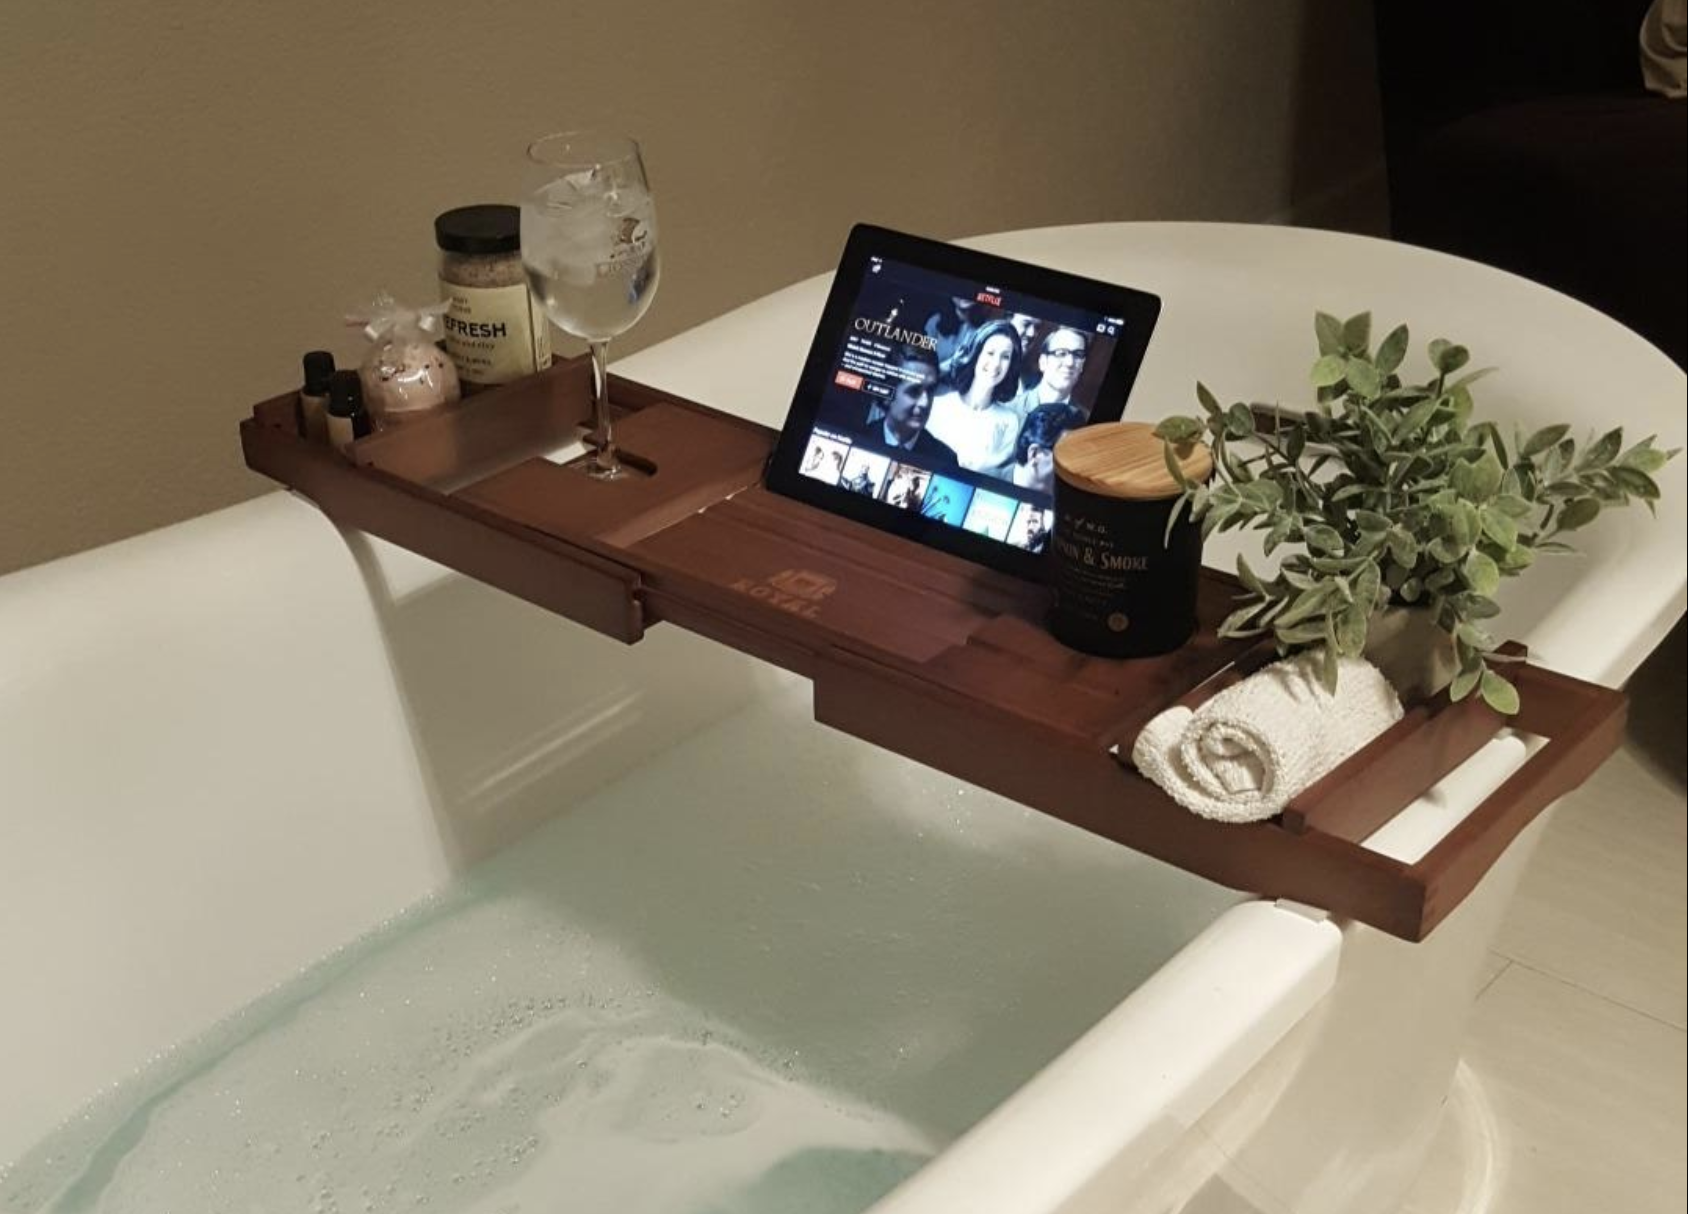 Reviewer image of a wooden bath caddy holding an iPad, washcoth, plant, candle, wine glass, bath salts